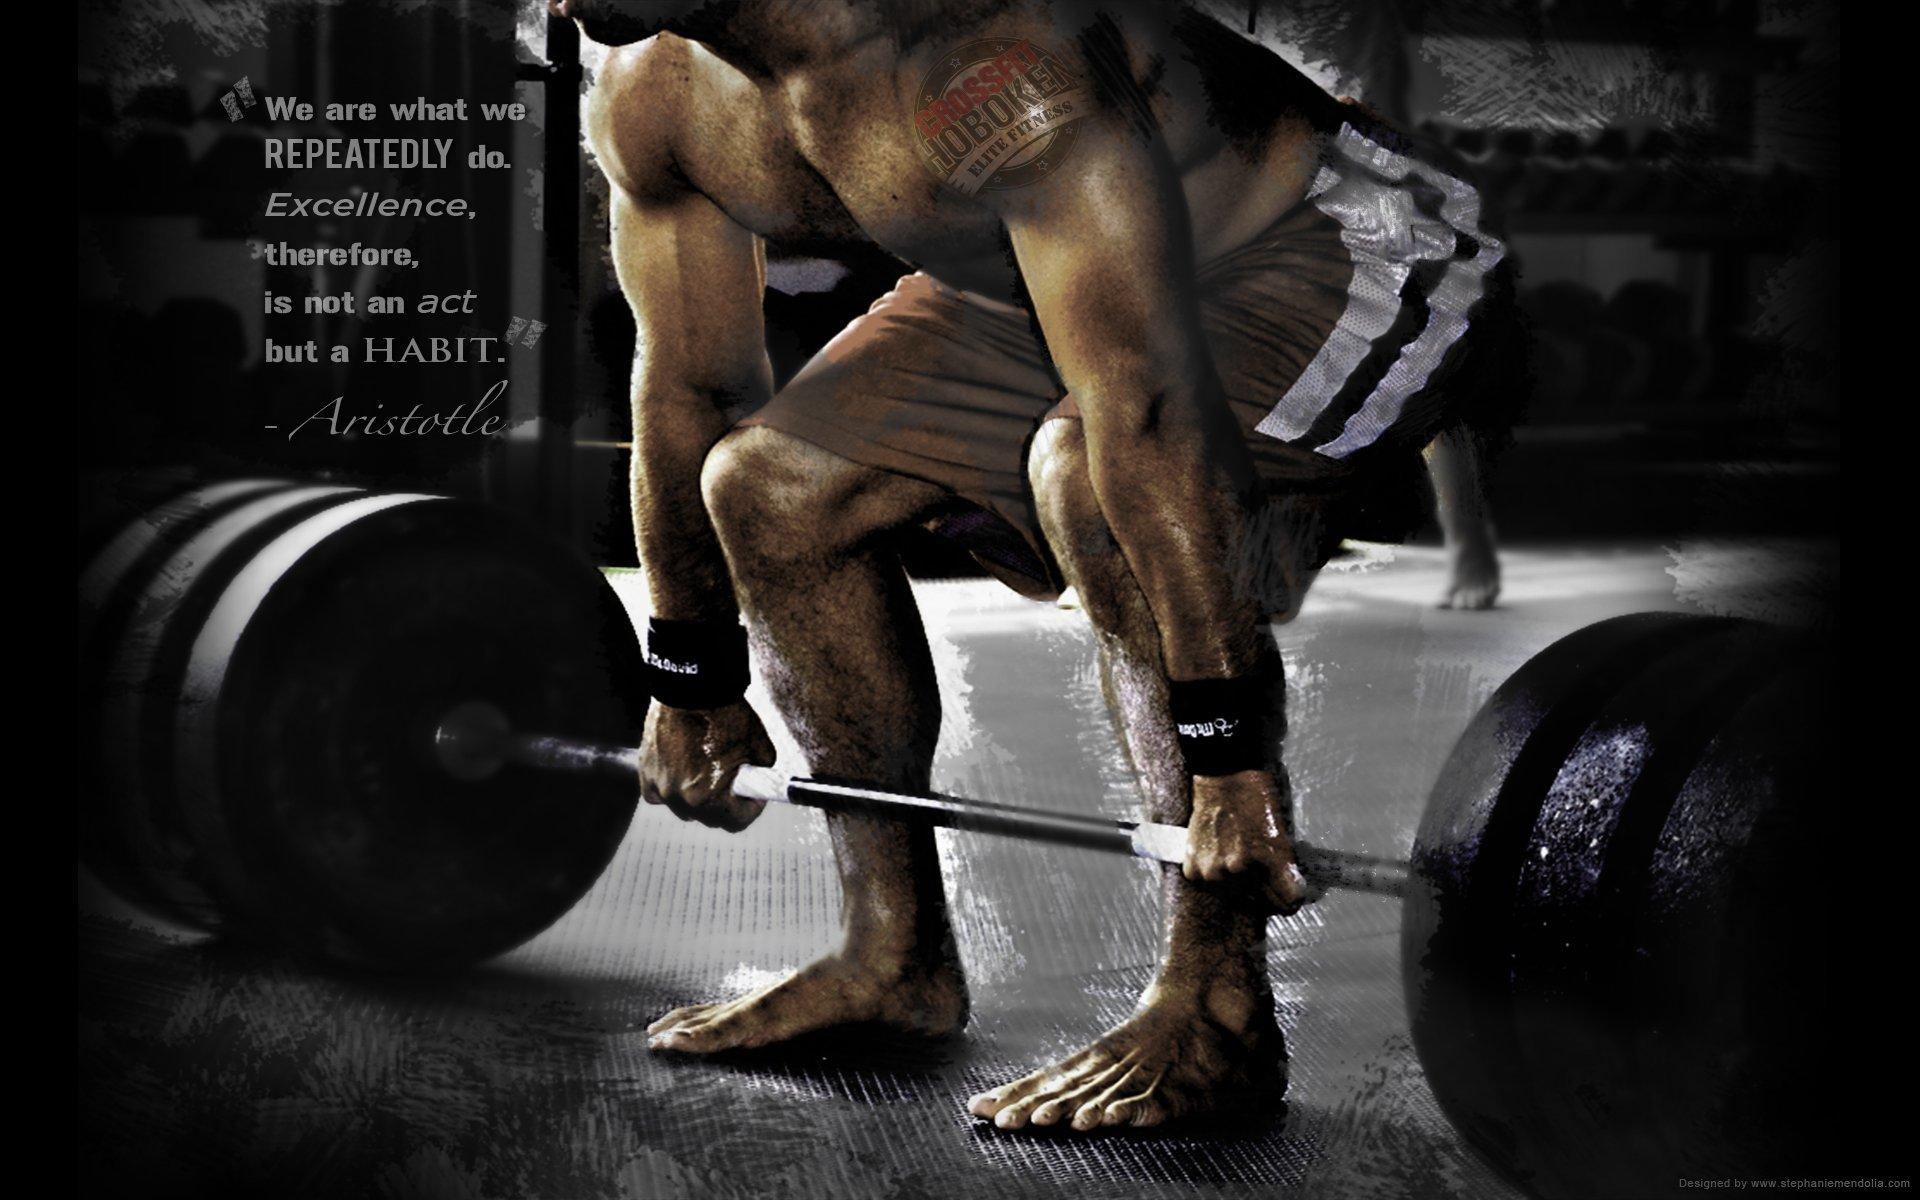 CrossFit Wallpaper Size 1920x1200 AmazingPictcom   HD Wallpapers 1920x1200